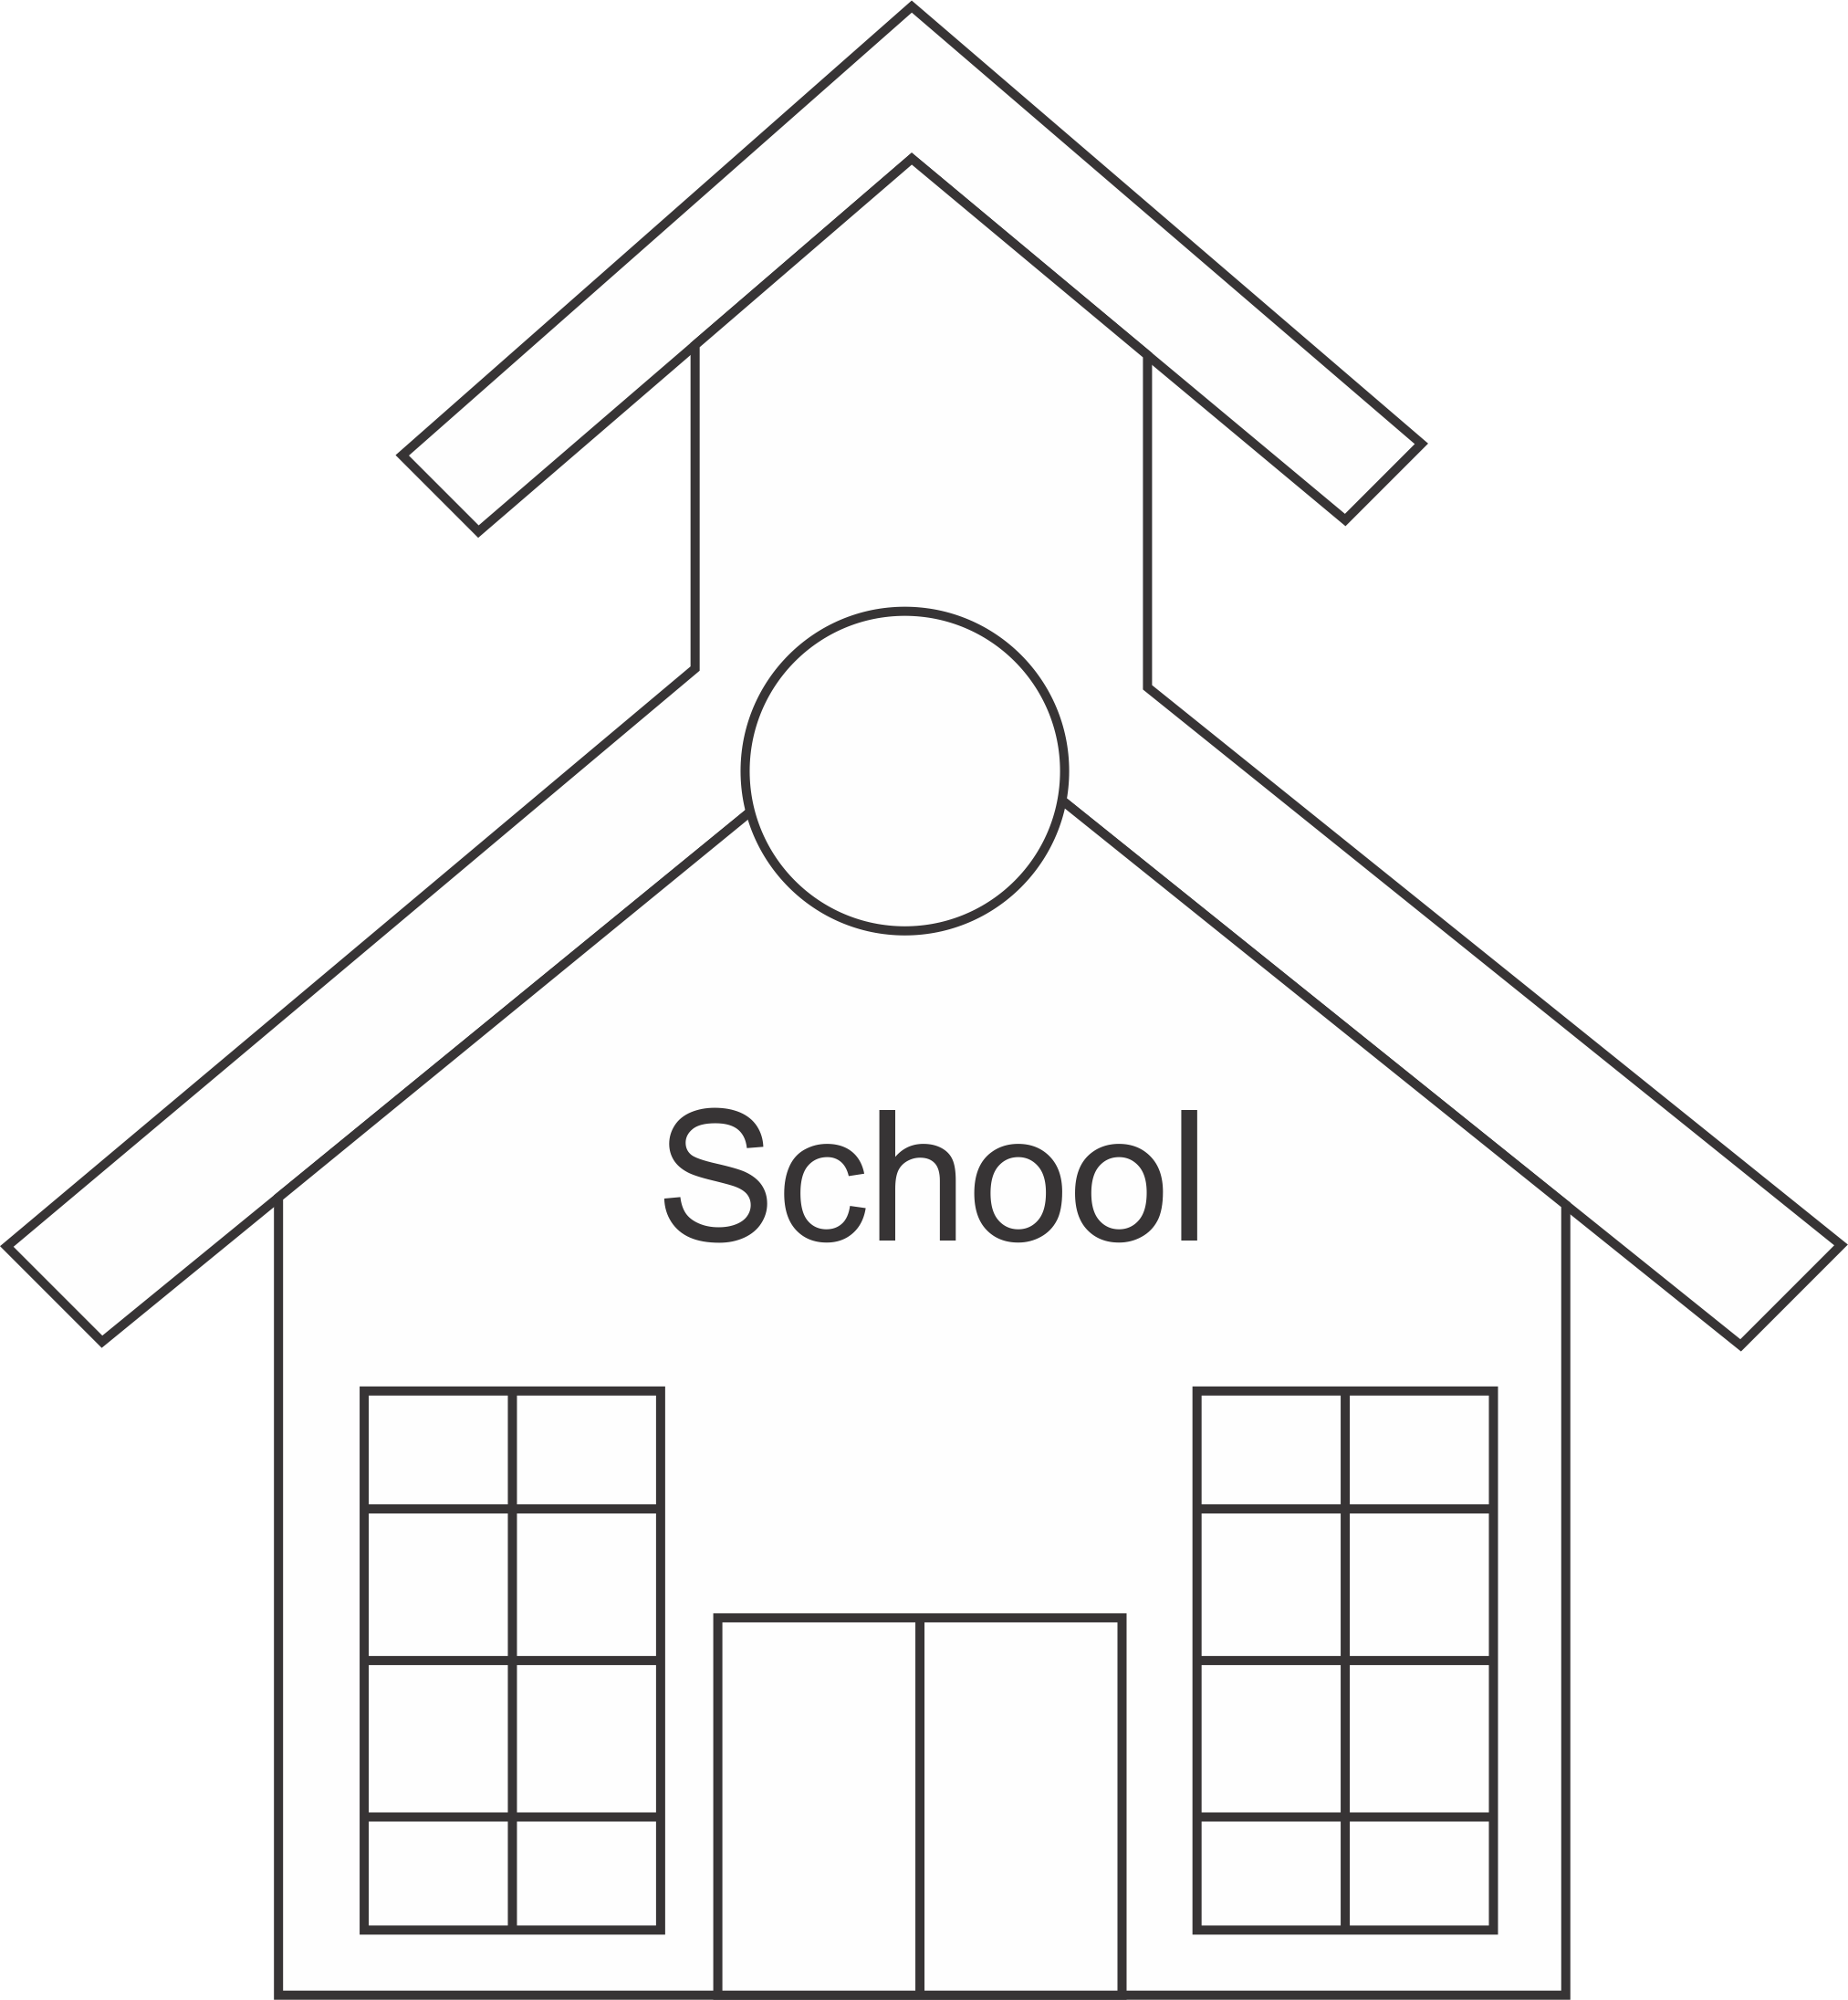 12 Black And White School Building Icons Images - Vector ...